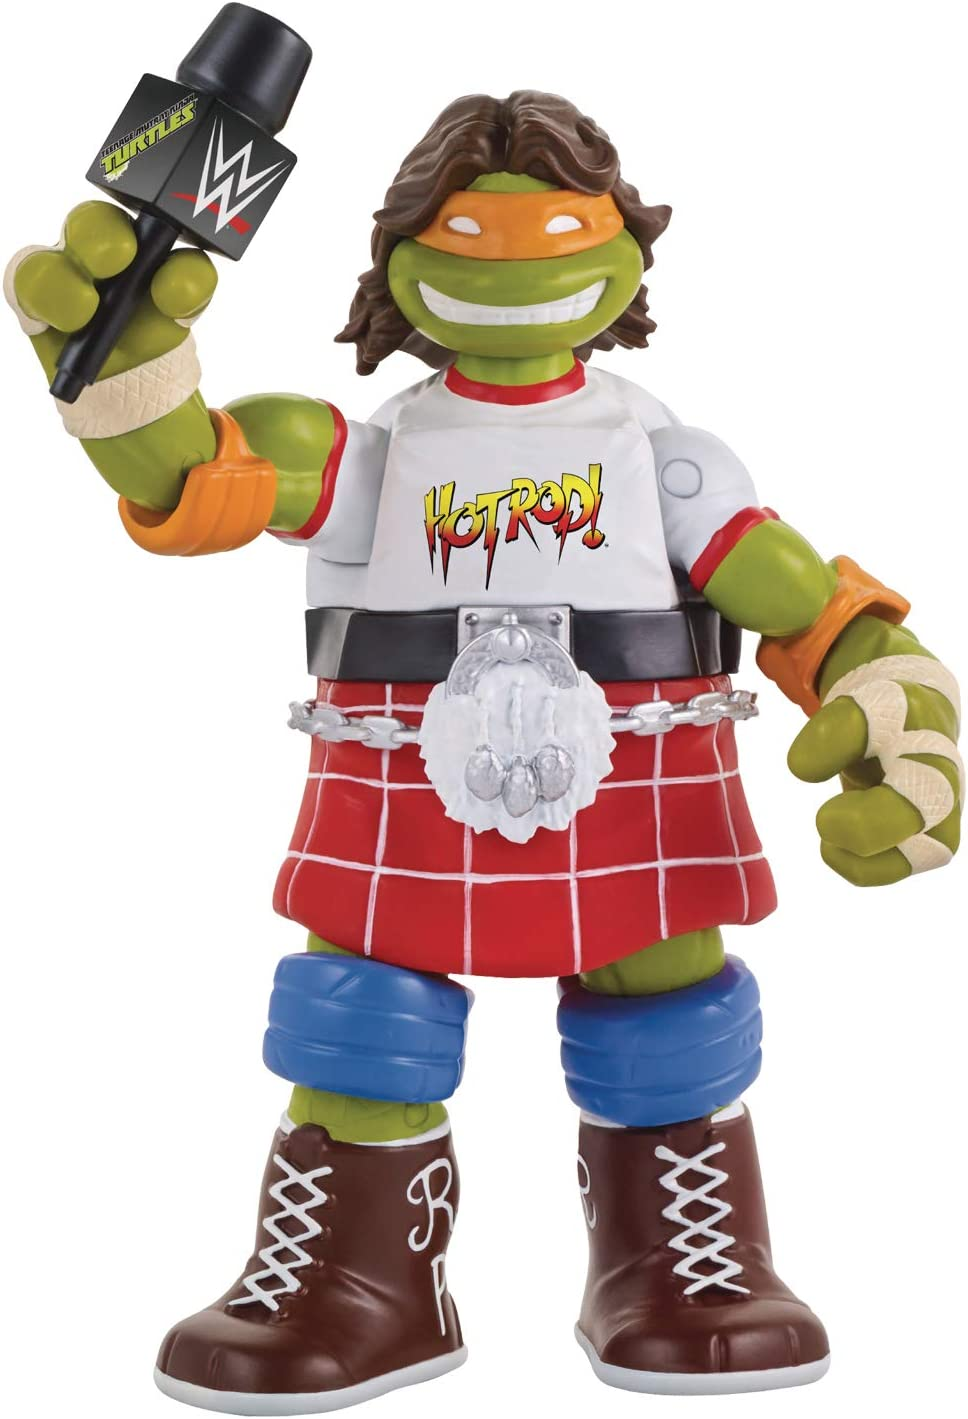 Teenage Mutant Ninja Turtles Ninja Super Stars: Michelangelo As Rowdy Roddy Piper Action Figure